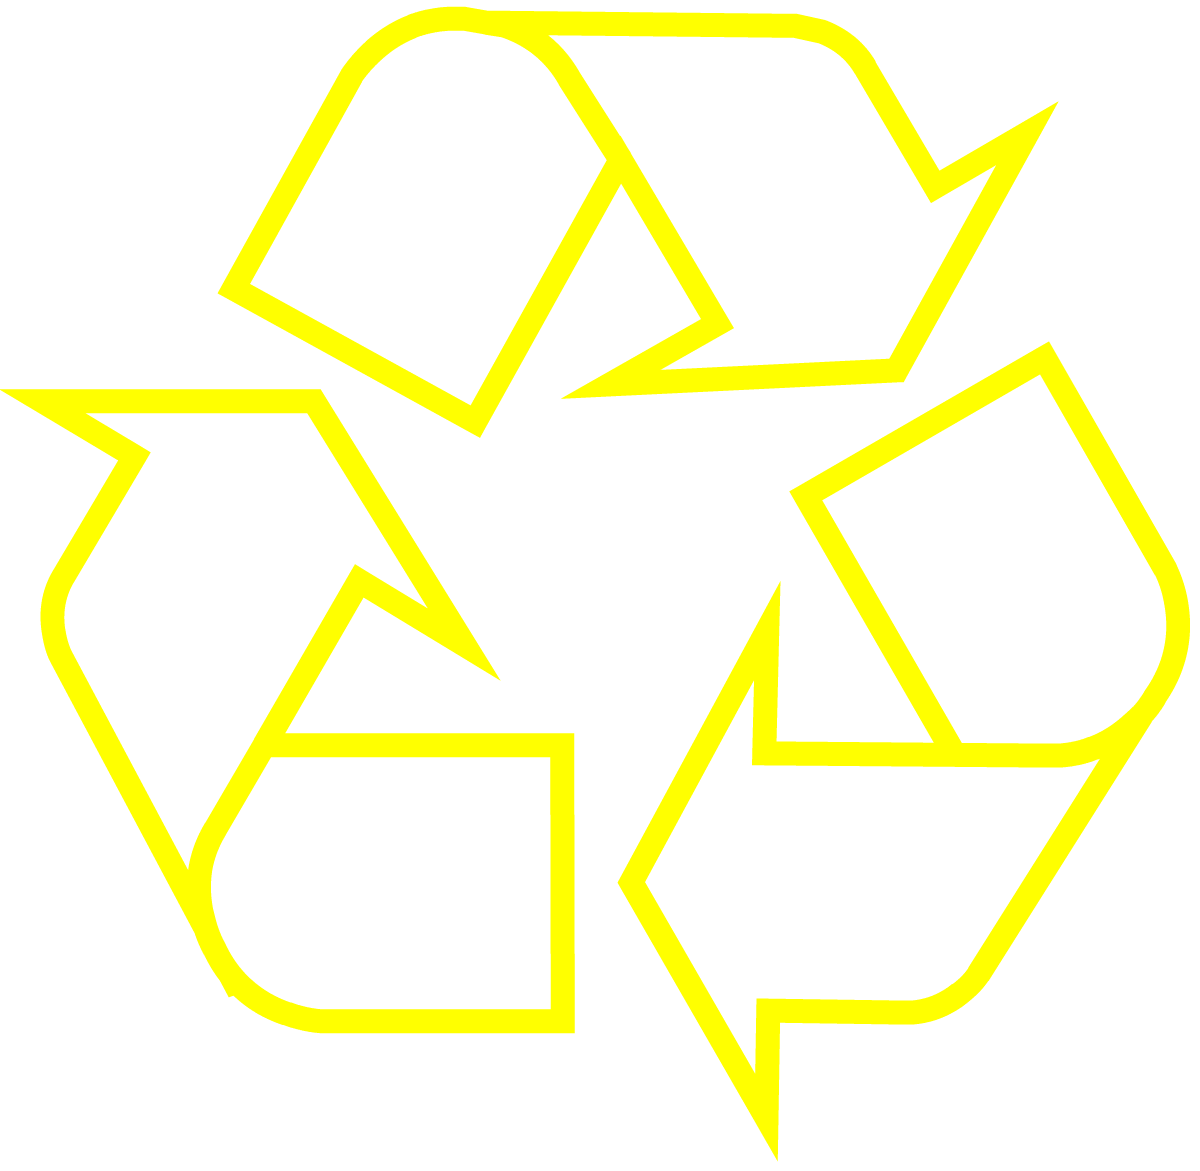 Download Recycling Symbol The Original Recycle Logo Recycle Symbol Recycle Logo Recycle Design